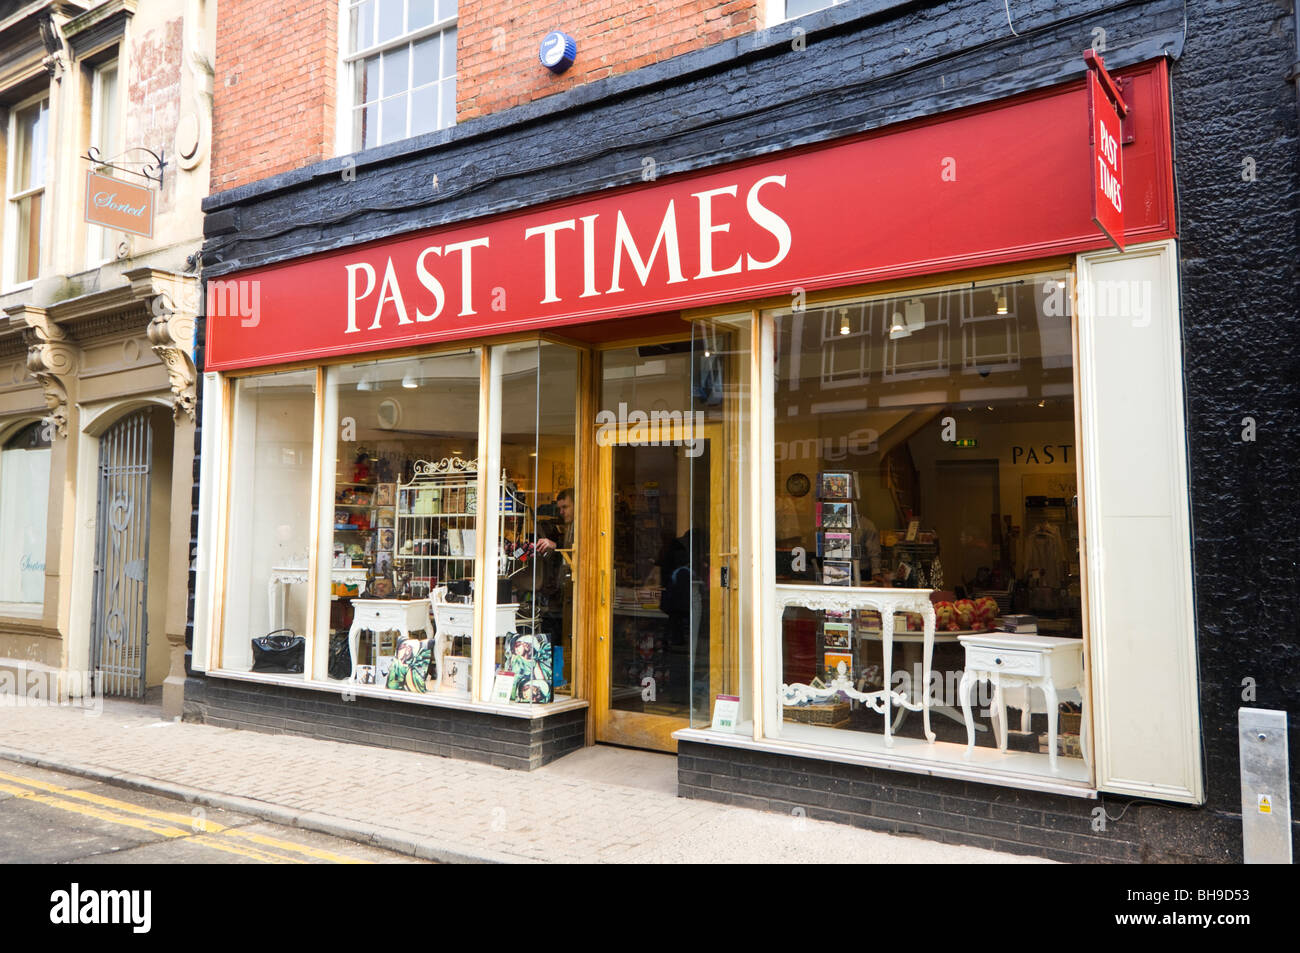 Past Times Shop Hereford Herefordshire - Stock Image